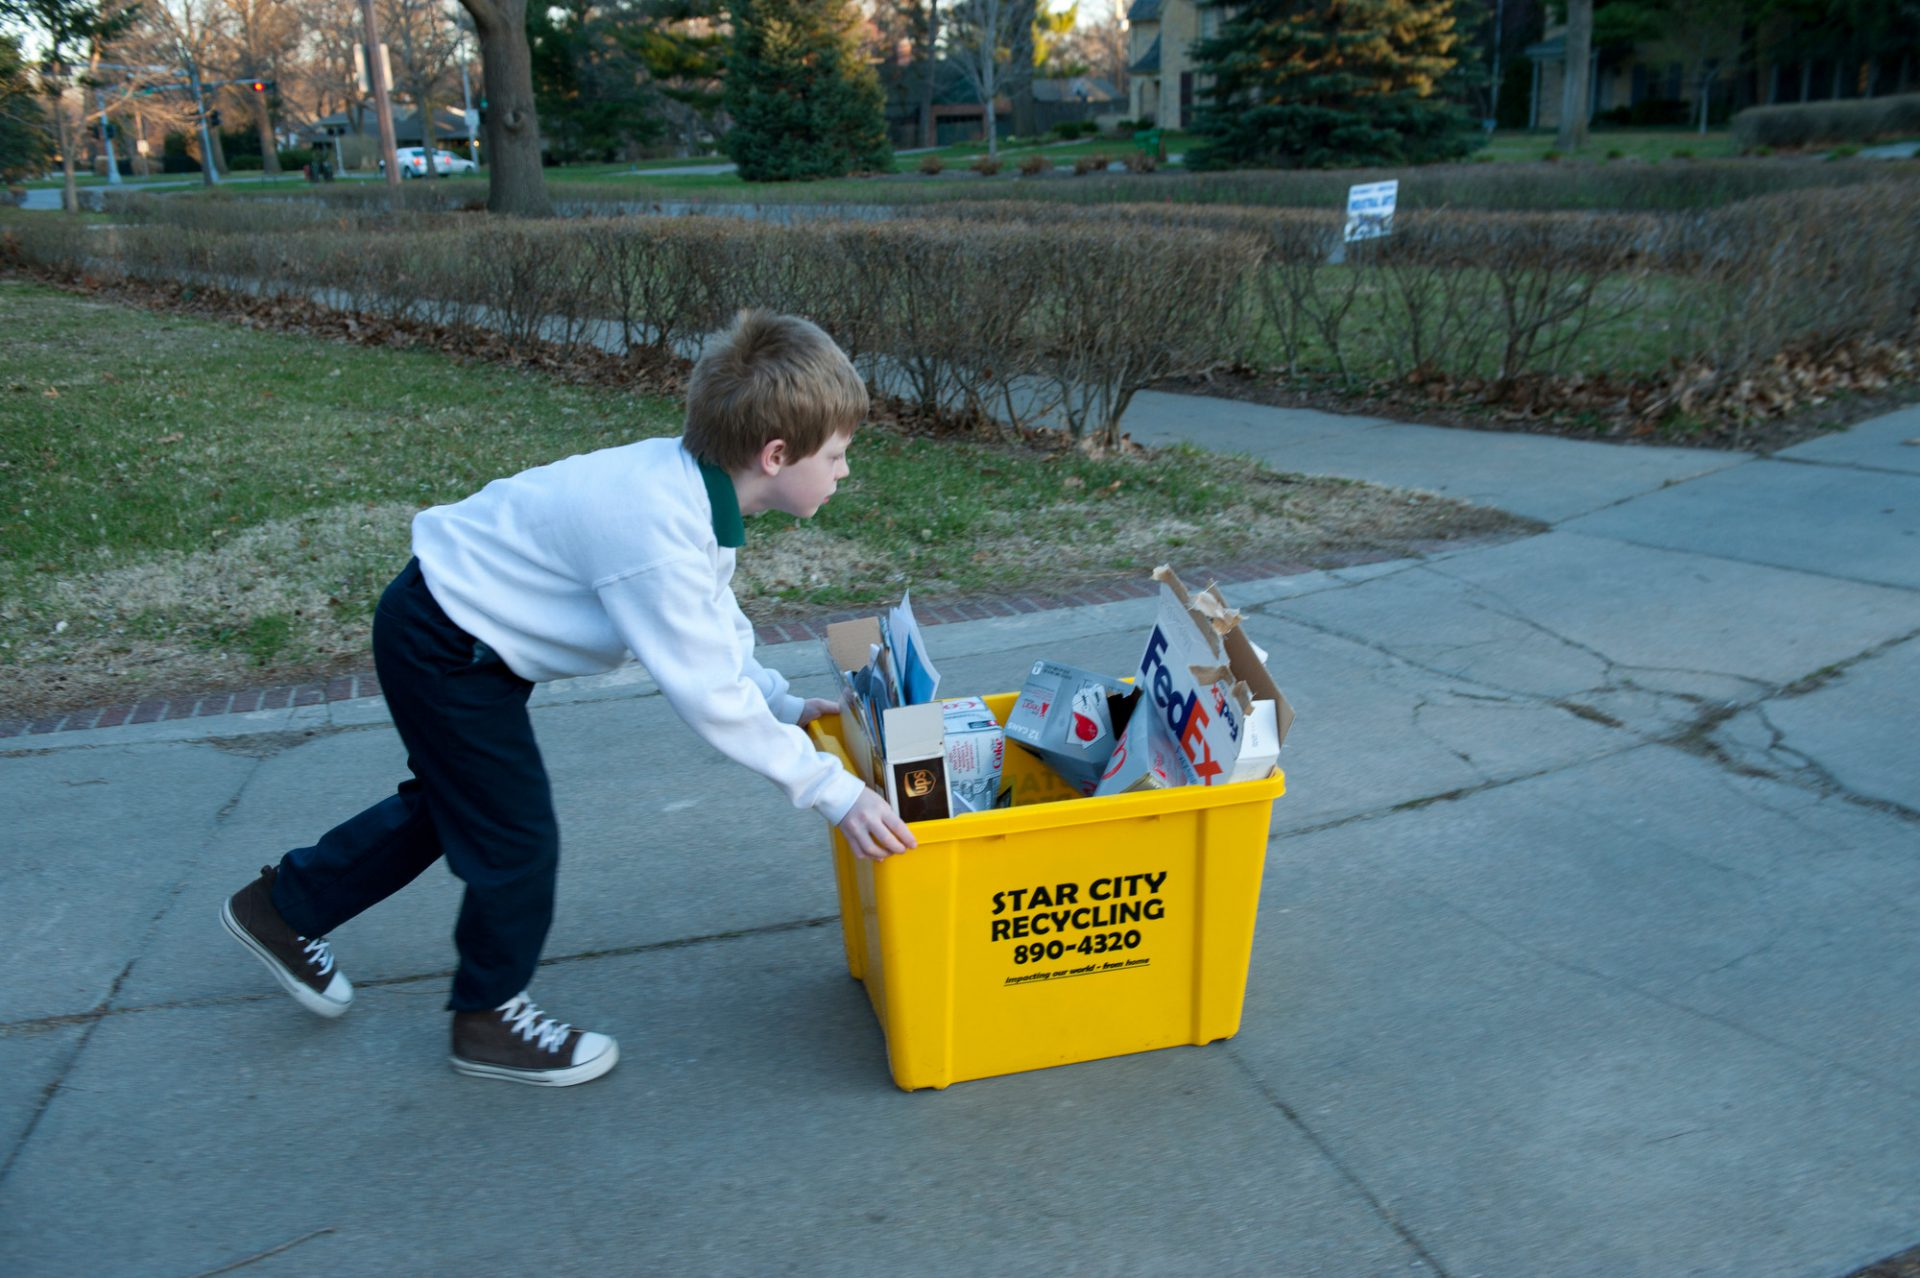 Photo: A young boy recycles.